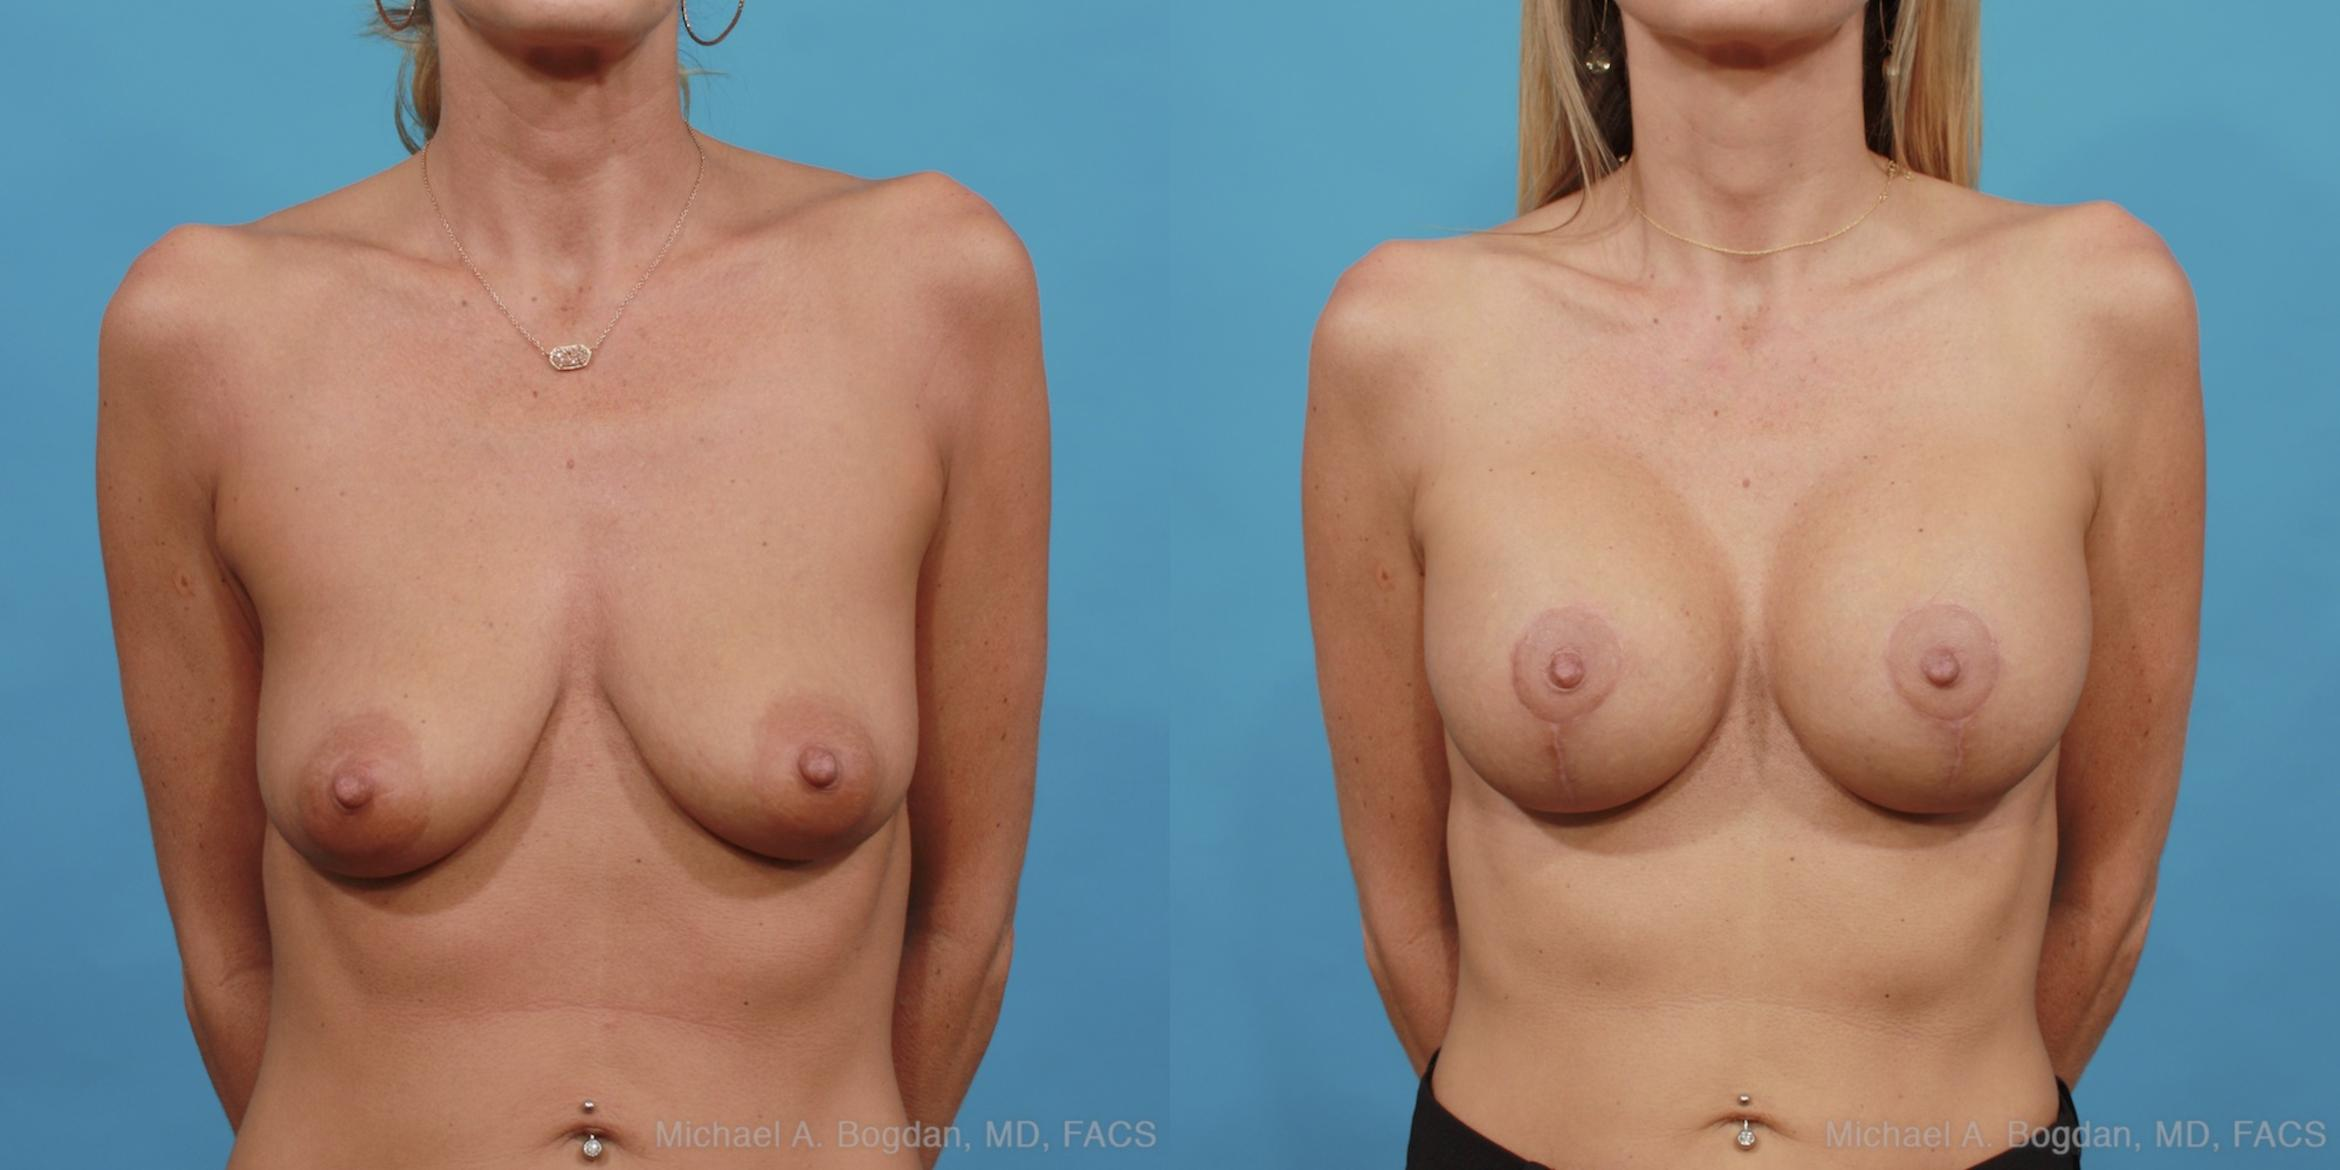 Mastopexy & Augmentation Case 442 Before & After View #1 | Fort Worth & Frisco, Texas | Michael A. Bogdan, MD, FACS